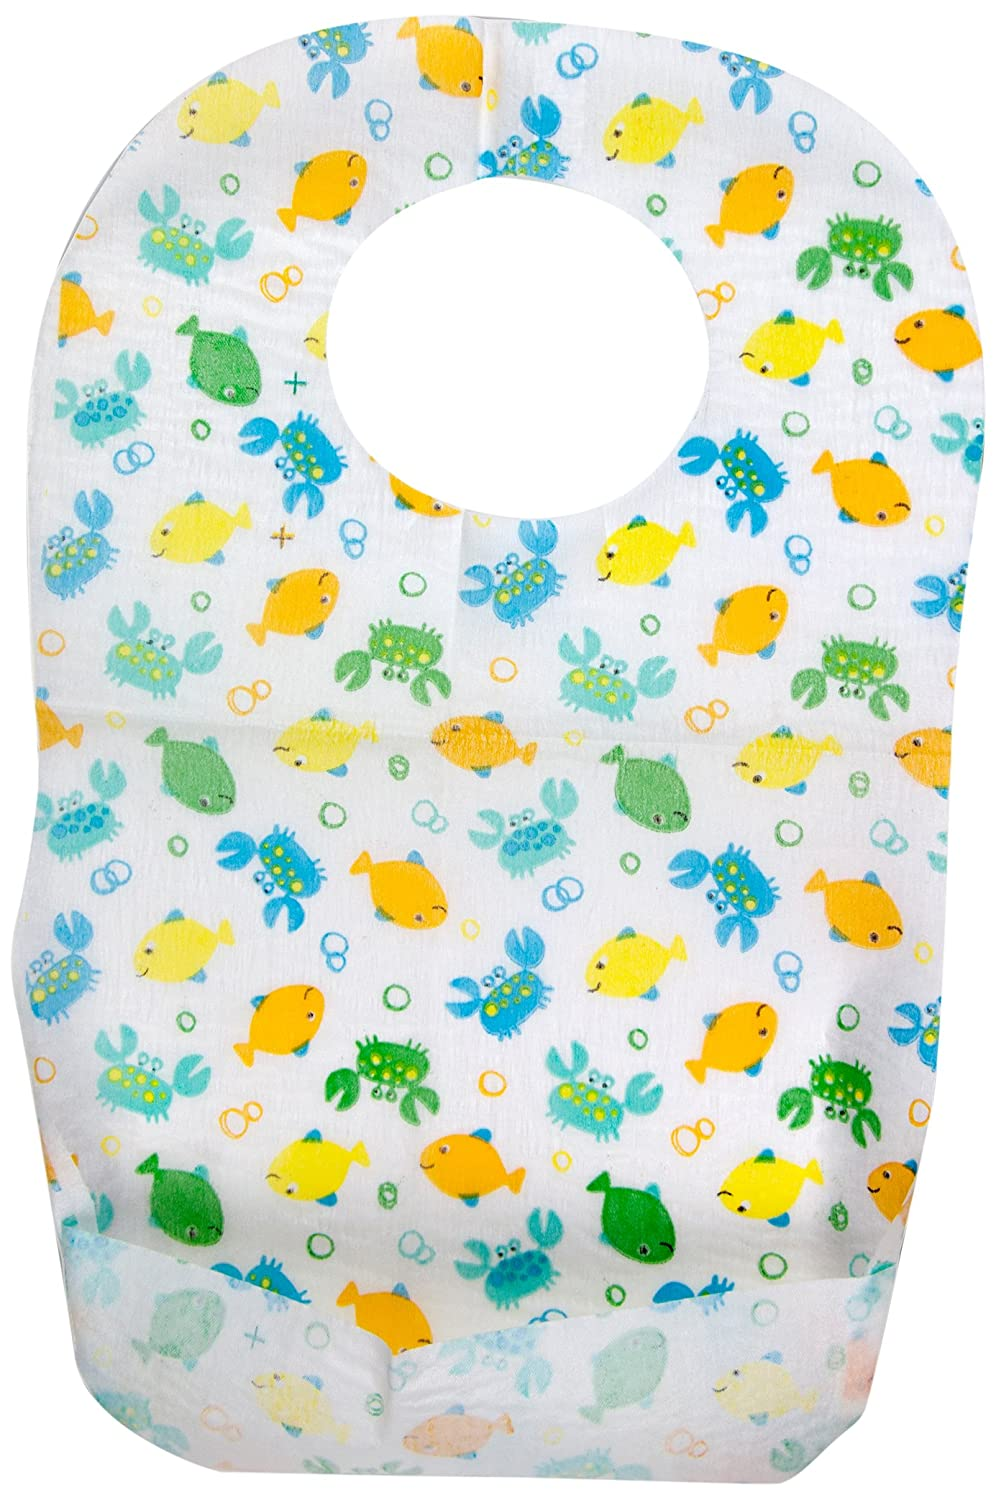 Summer Infant Keep Me Clean Disposable Bibs, 20-Count 00066